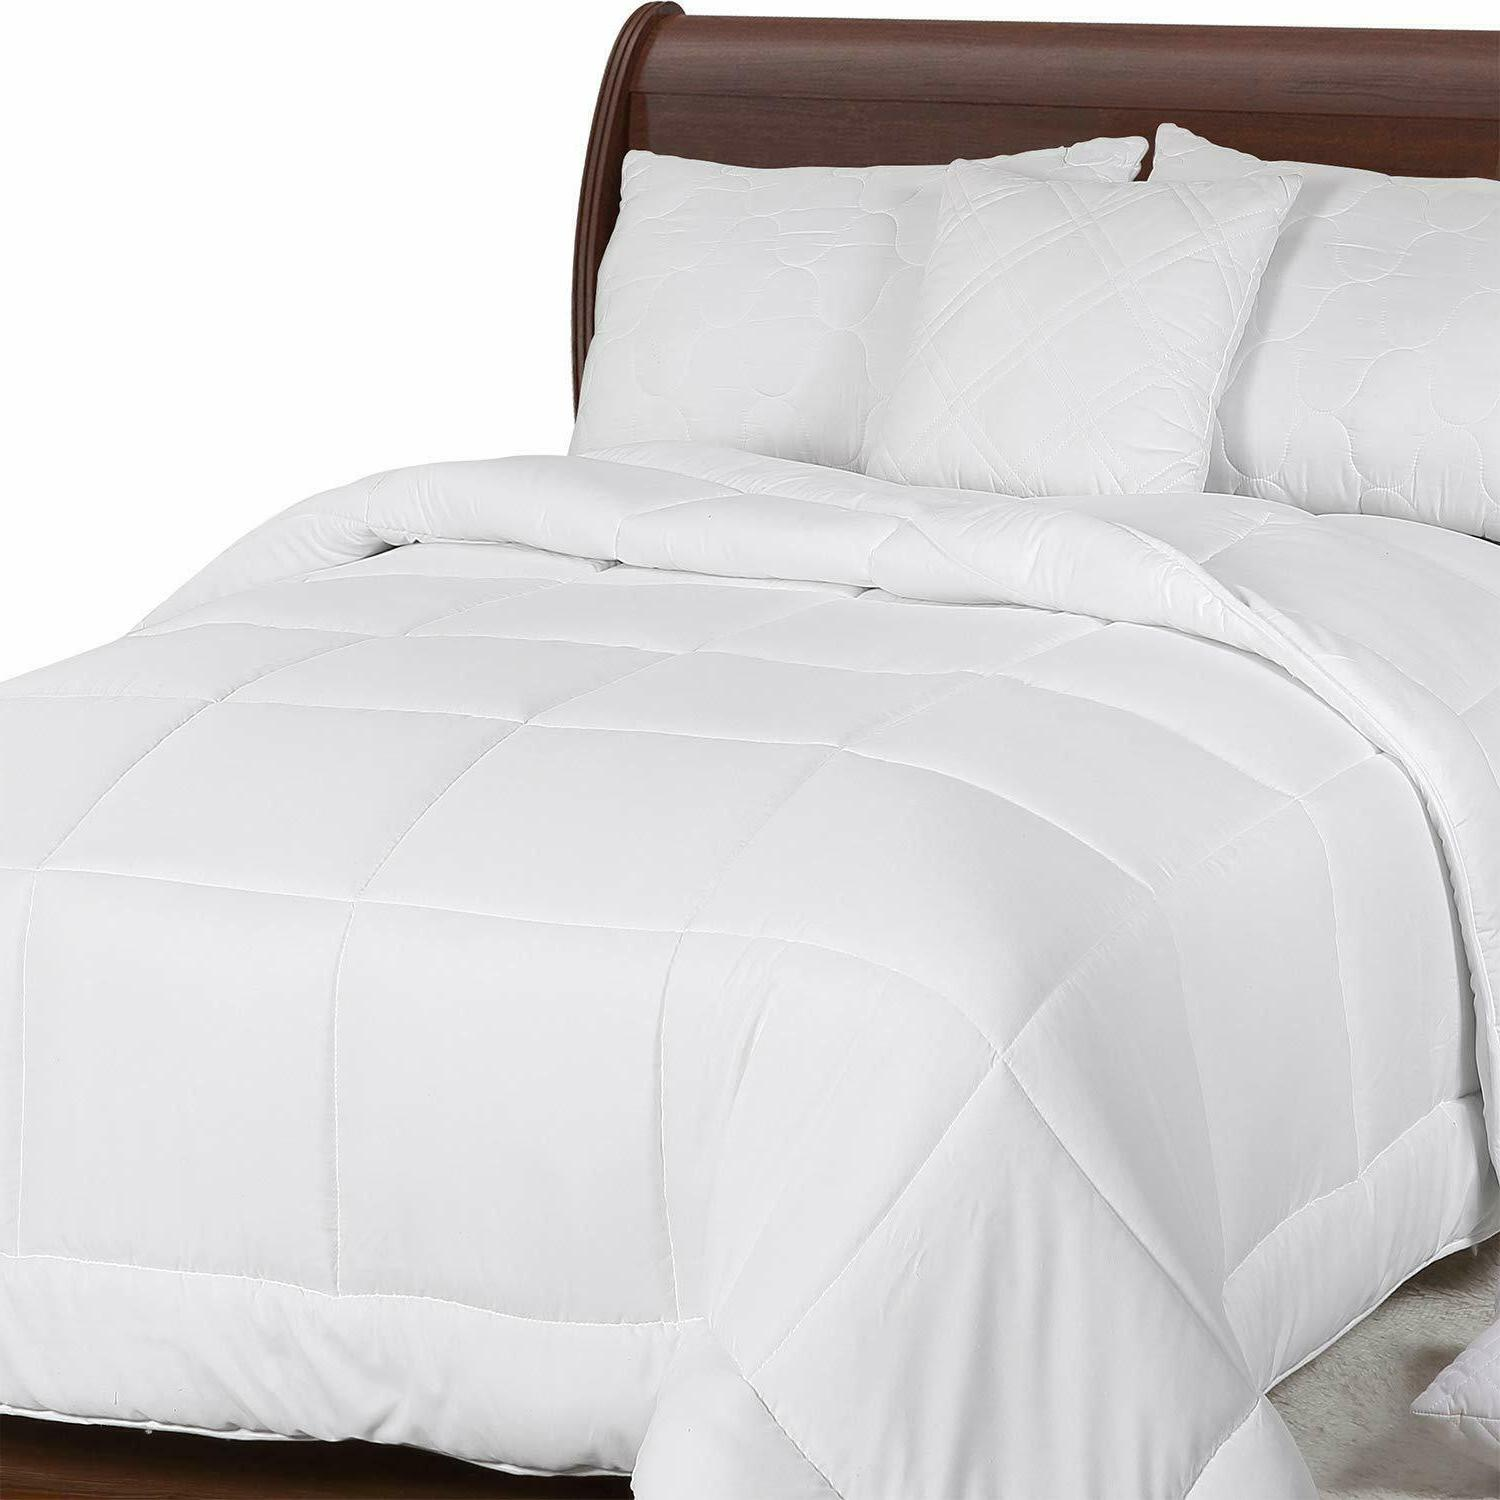 All Season Quilted Duvet Insert Style 250 GSM Bedding